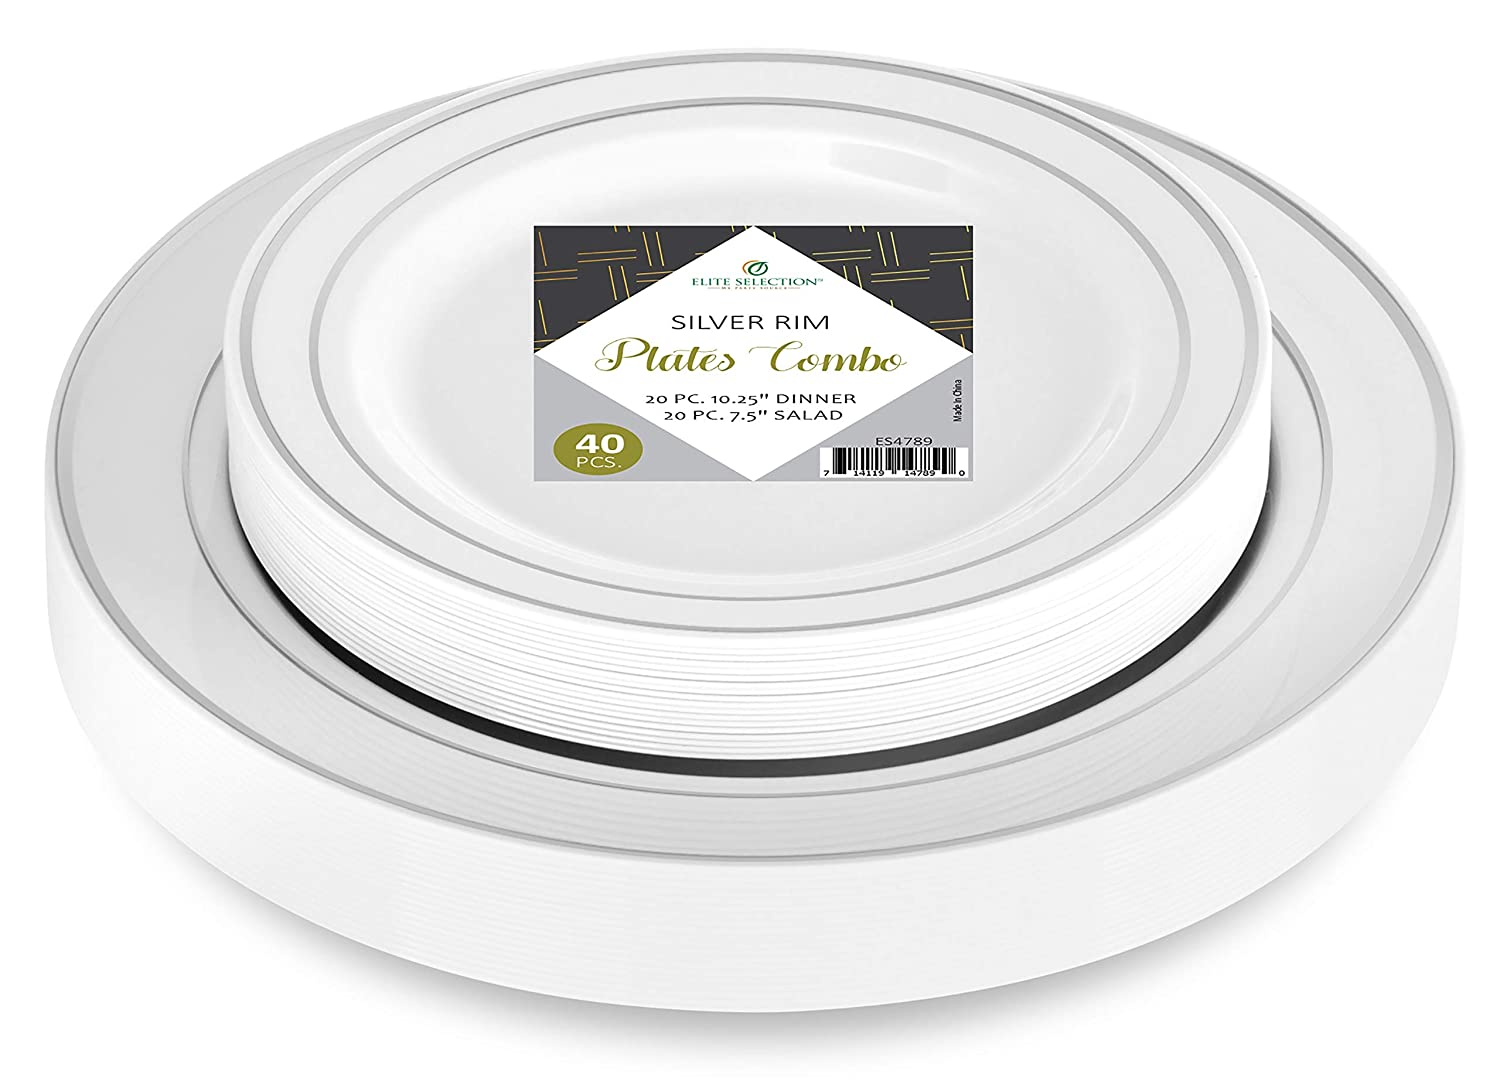 Elite Selection Set Of 40 Party Plastic Plates Silver Rim Includes 20 Dinner Plates 10.25 And 20 Salad / Dessert Plates 7.5